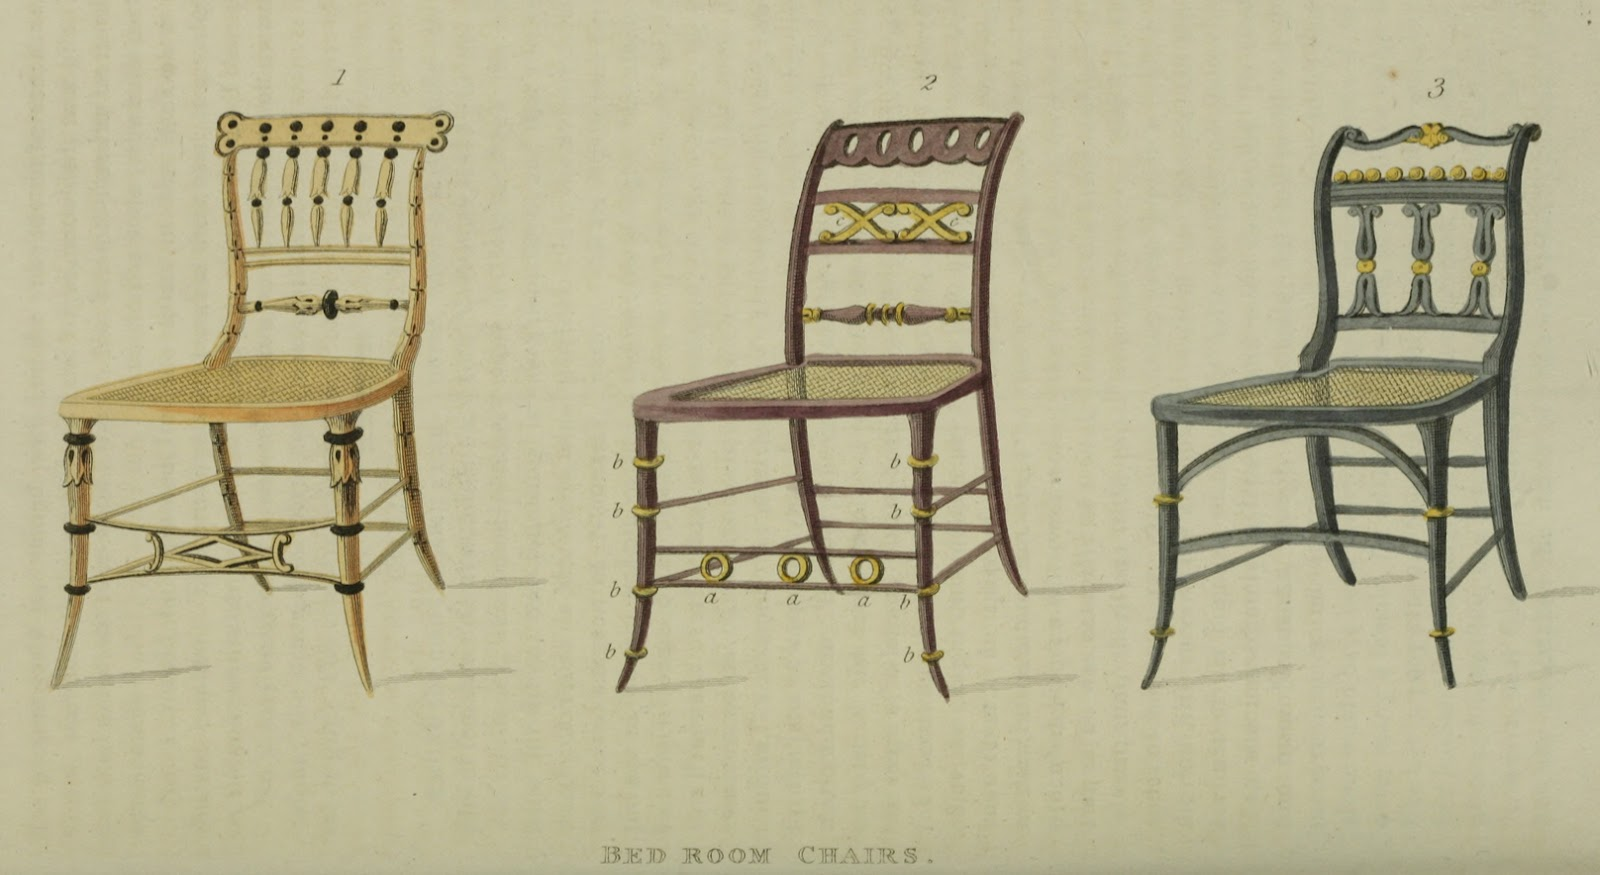 1814 Bedroom Chairs I Would Not Want To Sit In One Of These Too